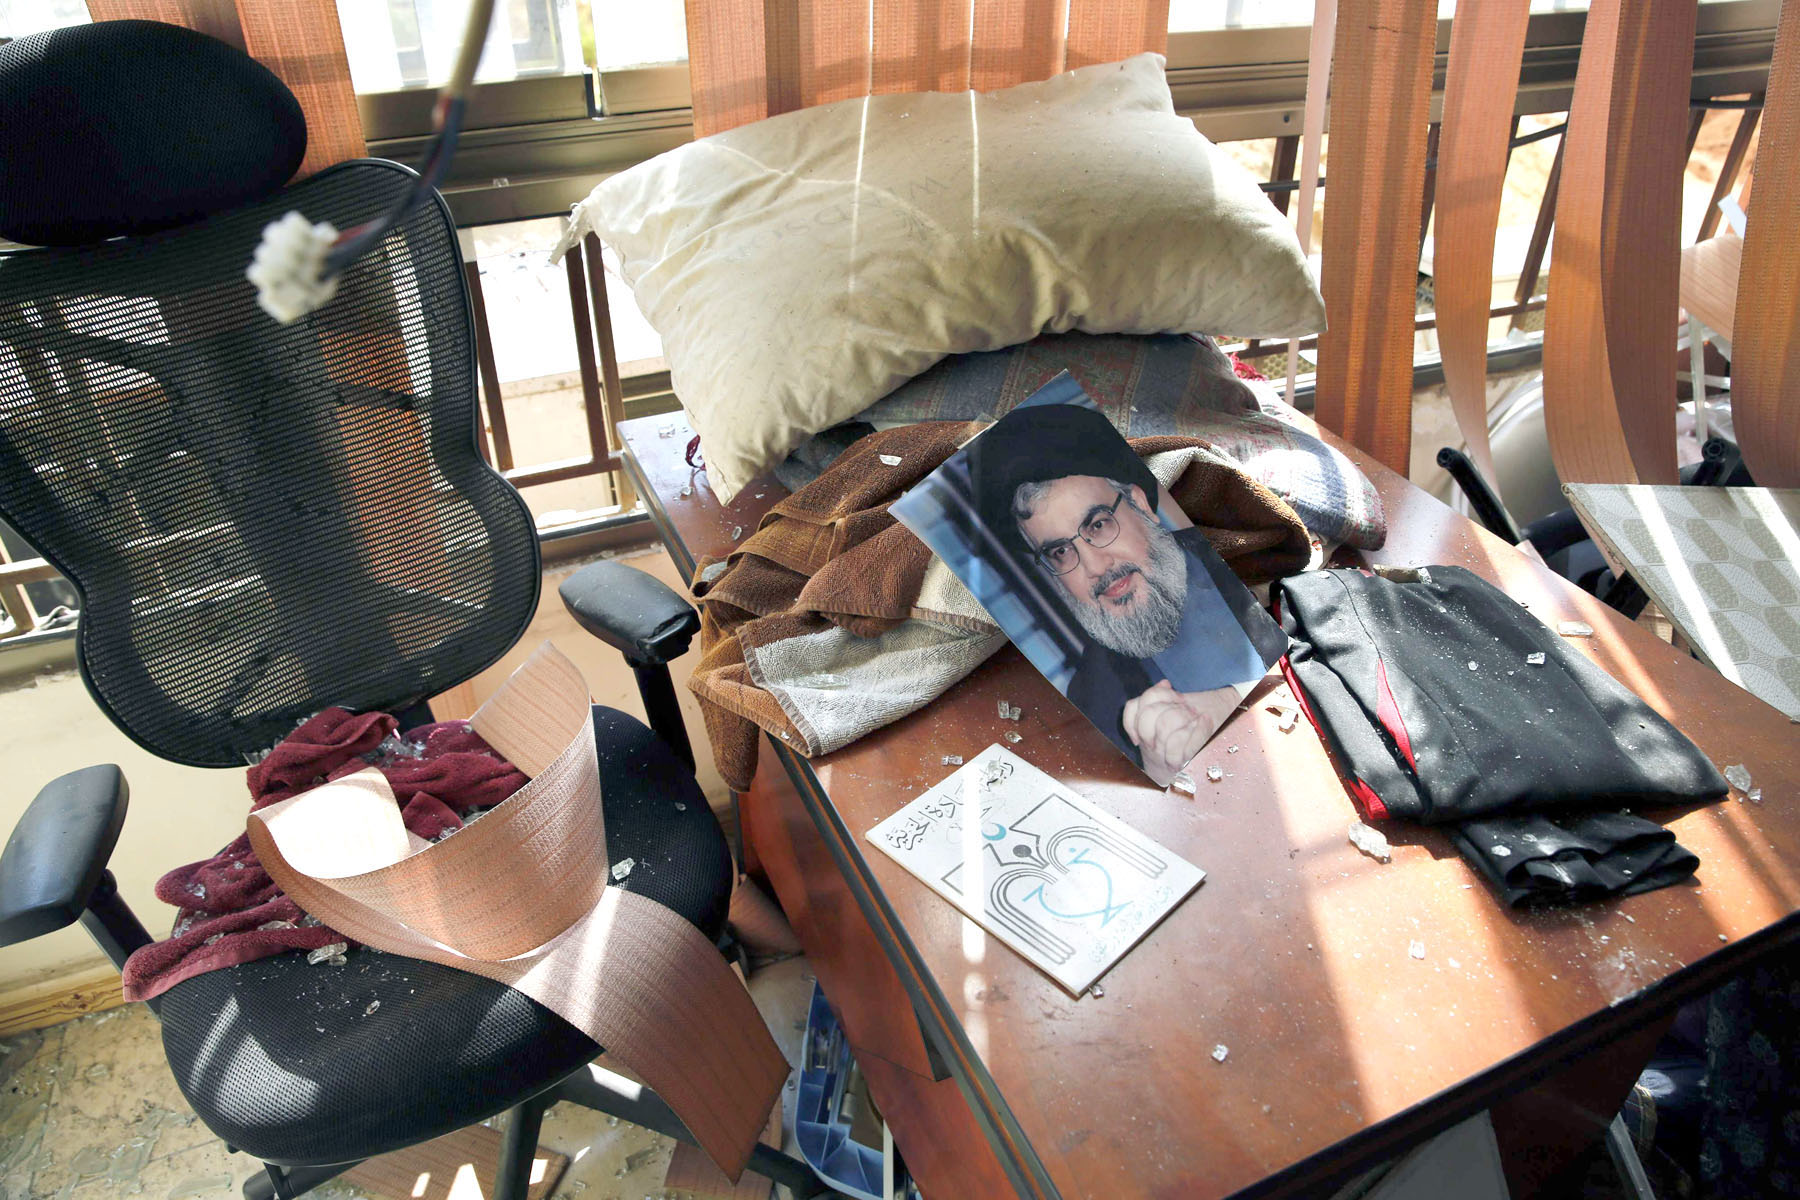 Closer to the brink than ever. A picture of Hezbollah leader Sayyed Hassan Nasrallah lies amid damage inside the Lebanese Hezbollah media office in a southern suburb of Beirut, August 25.        (AP)